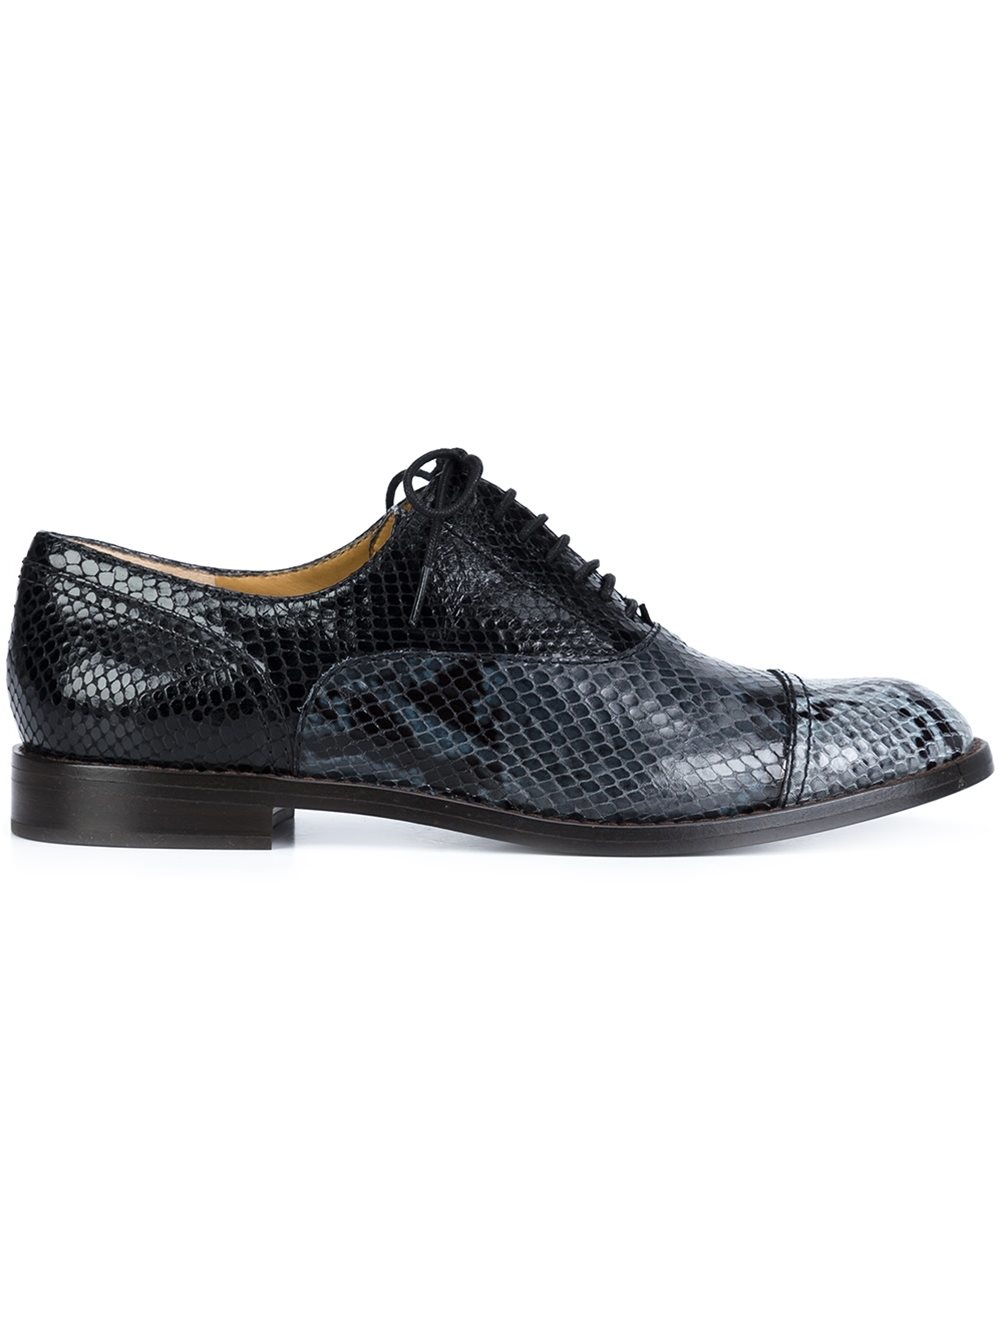 Marc Jacobs Clinton Oxford Shoes In Blue For Men Lyst